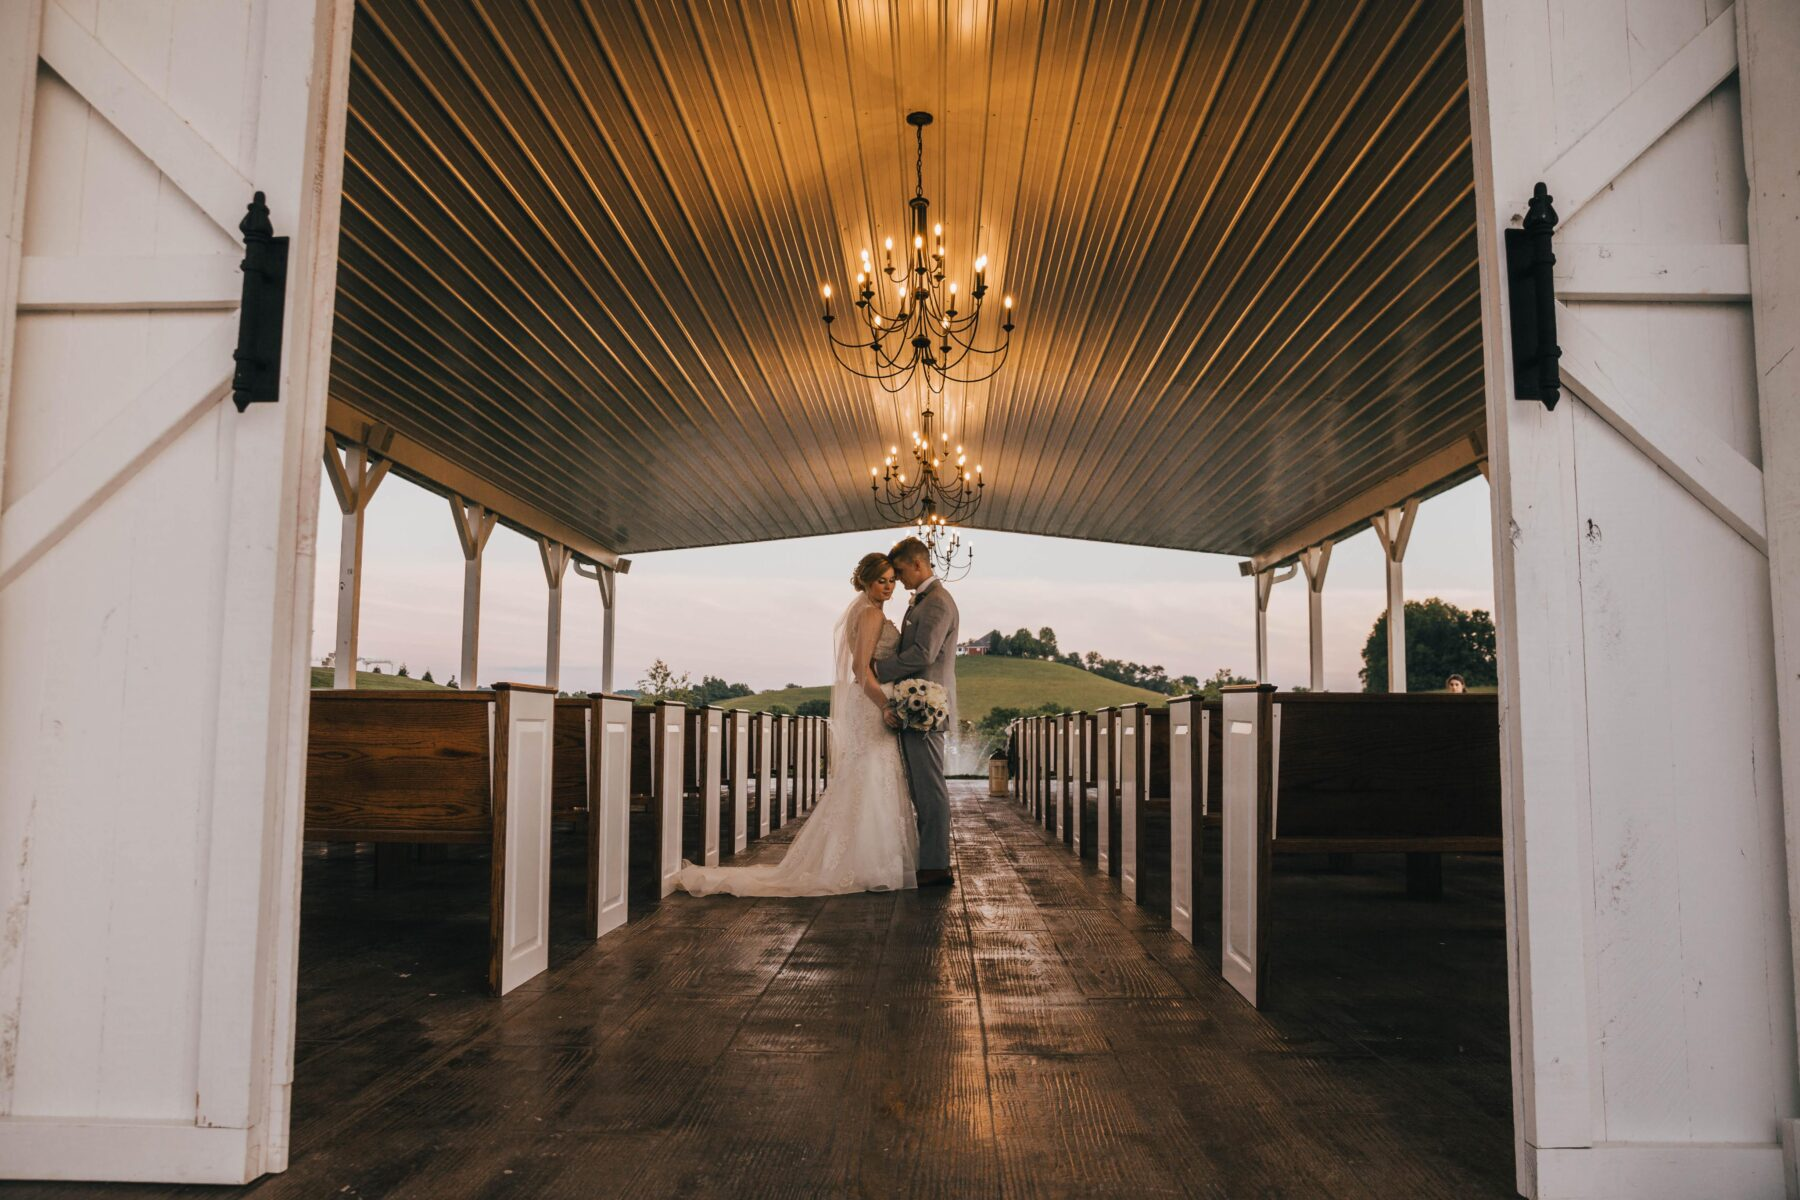 White Dove Barn Wedding by Grace Upon Grace Photography featured on Nashville Bride Guide